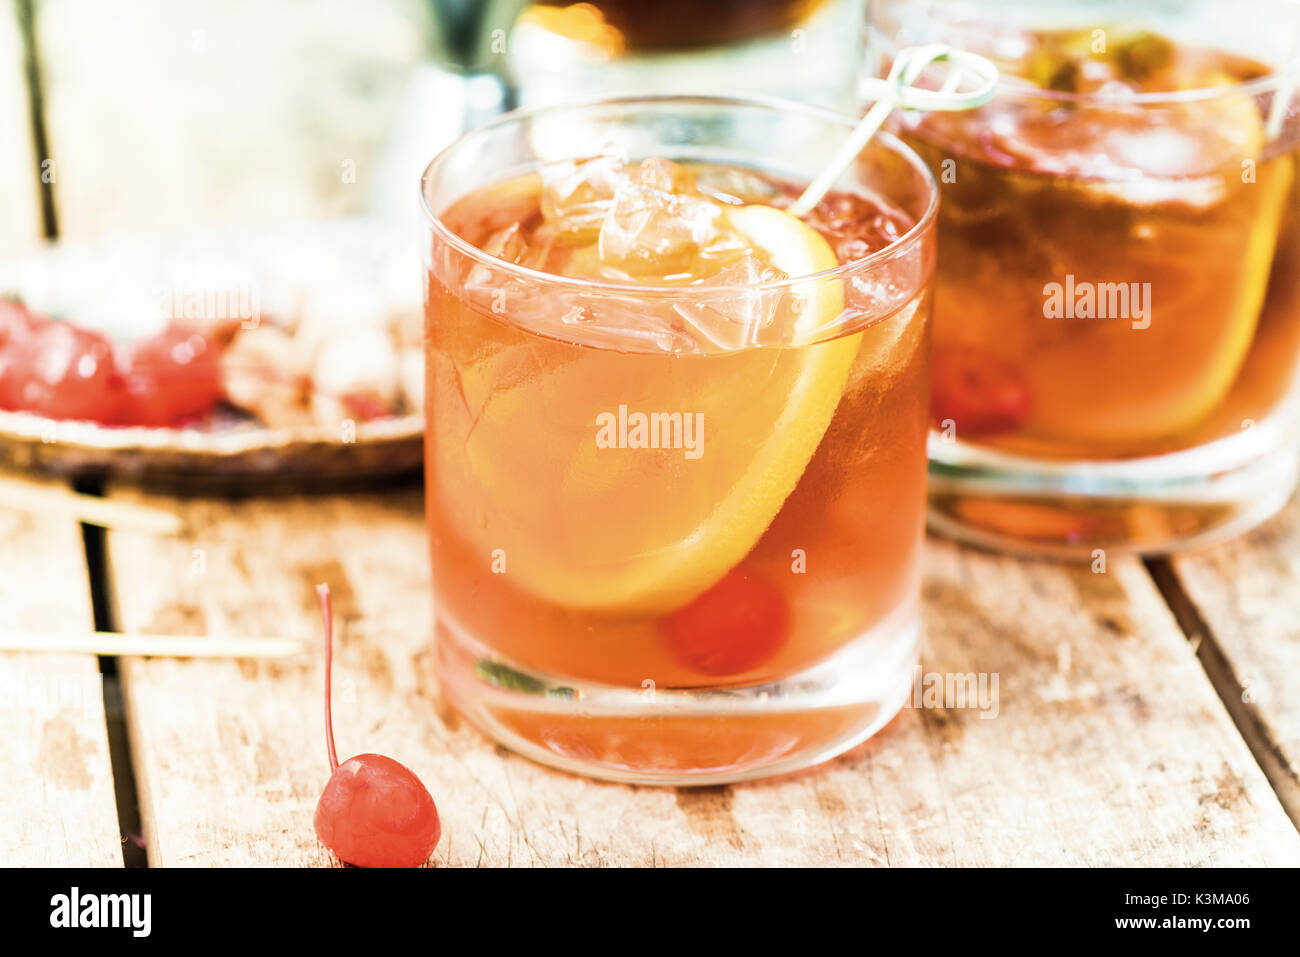 old fashion martini, cocktail - Stock Image